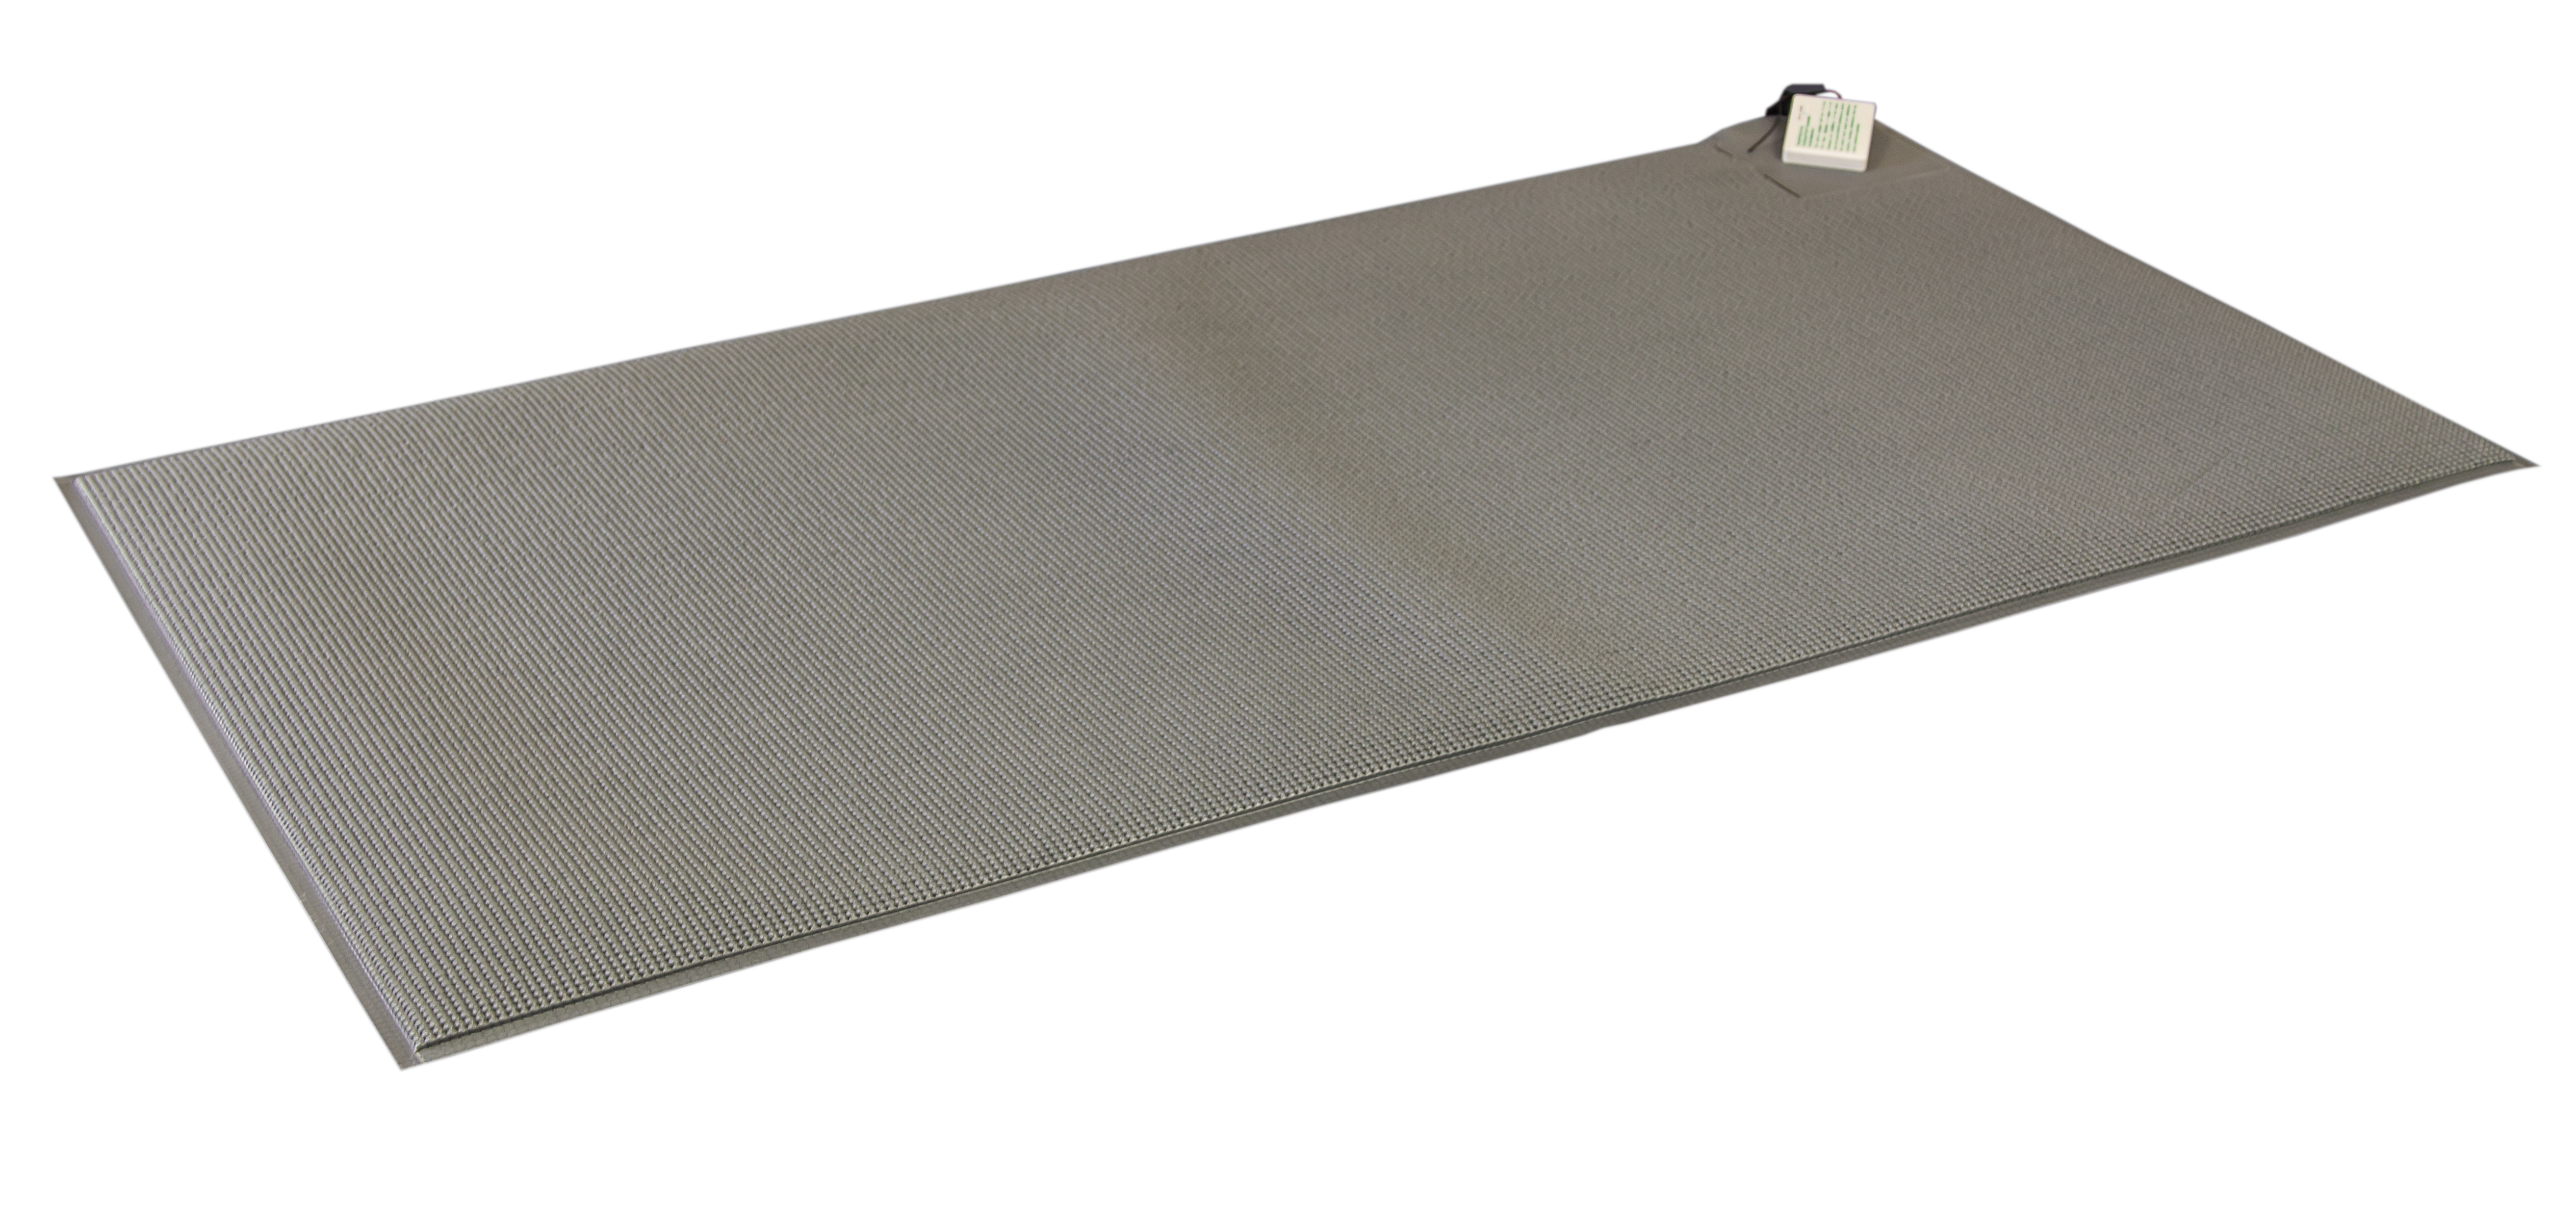 fmt-07c-cordless-long-floormat-23x48-gray-national-call-systems.jpg